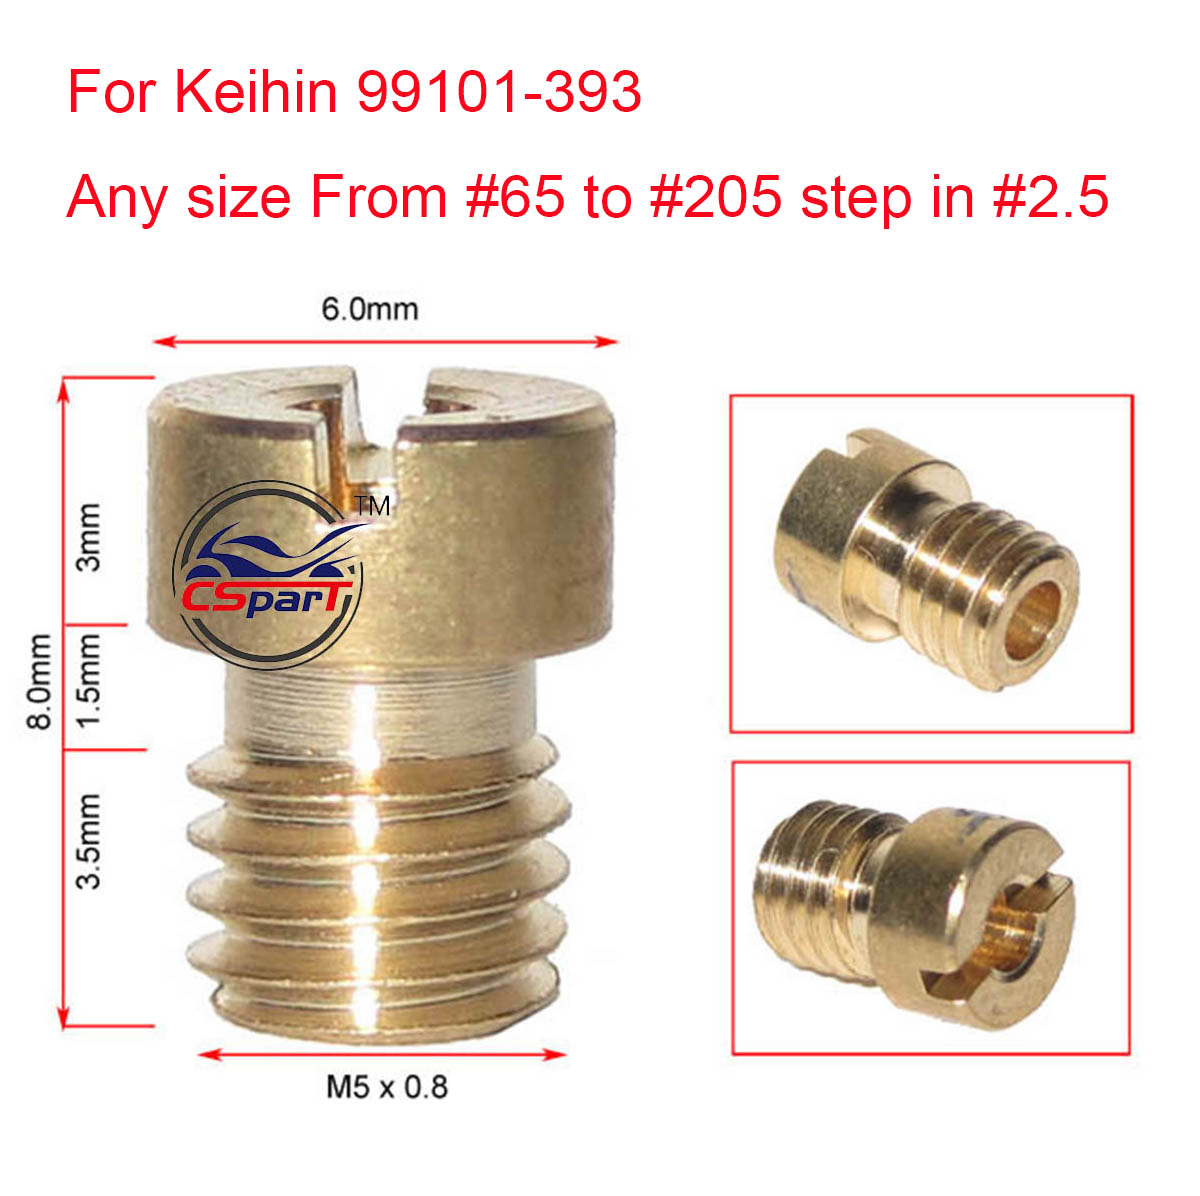 Various Main Jet Set M5 Thread for Carburetor Keihin KOSO OKO CVK Dellorto PE ATV Motorcycle GY6 Carb Parts 6 Size